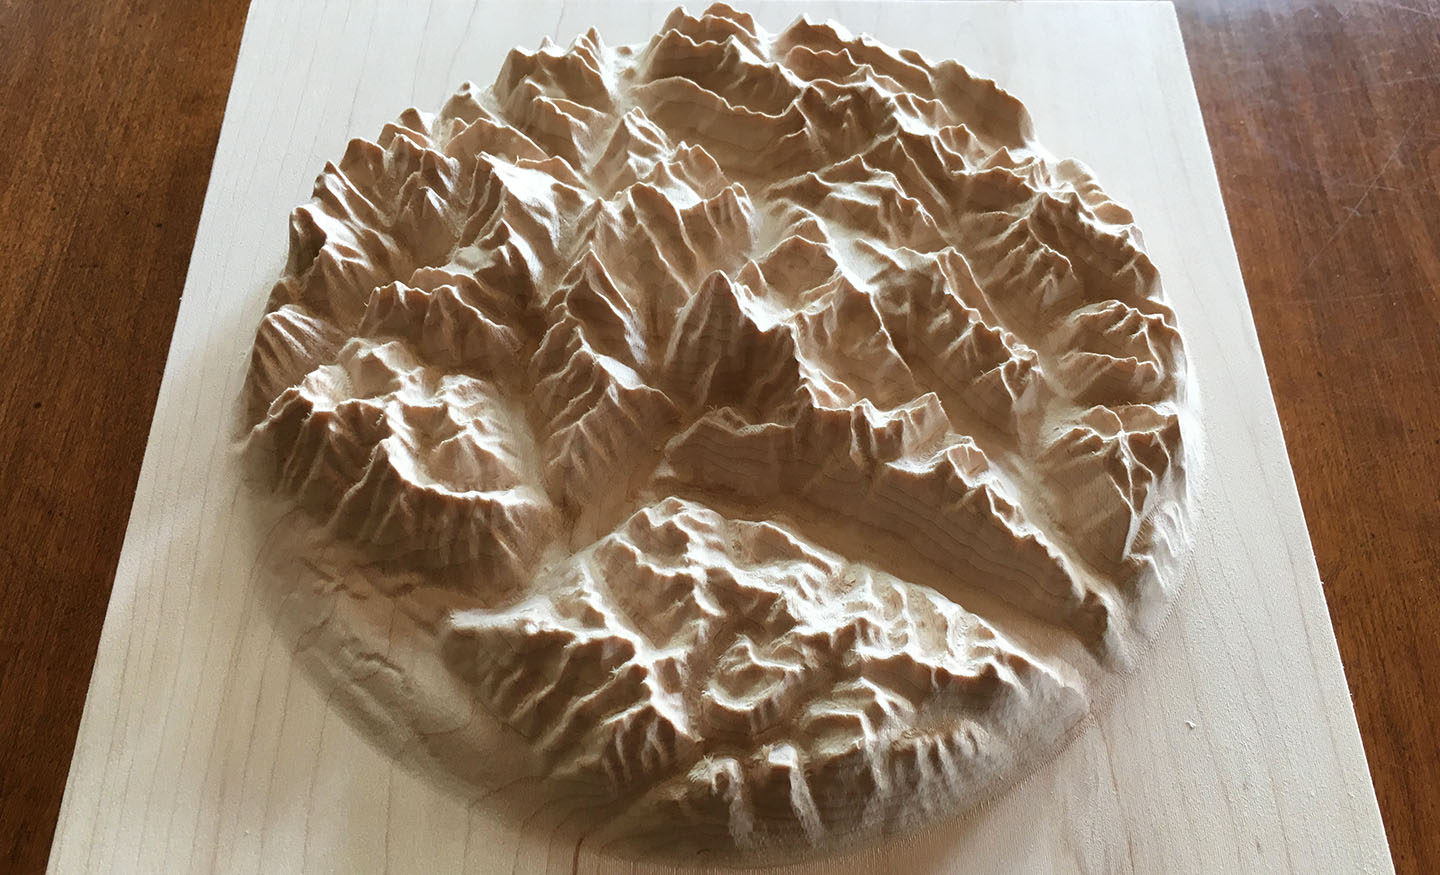 three-dimensional wood-carved relief map of the Canadian Rockies around Mount Robson, British Columbia, Canada